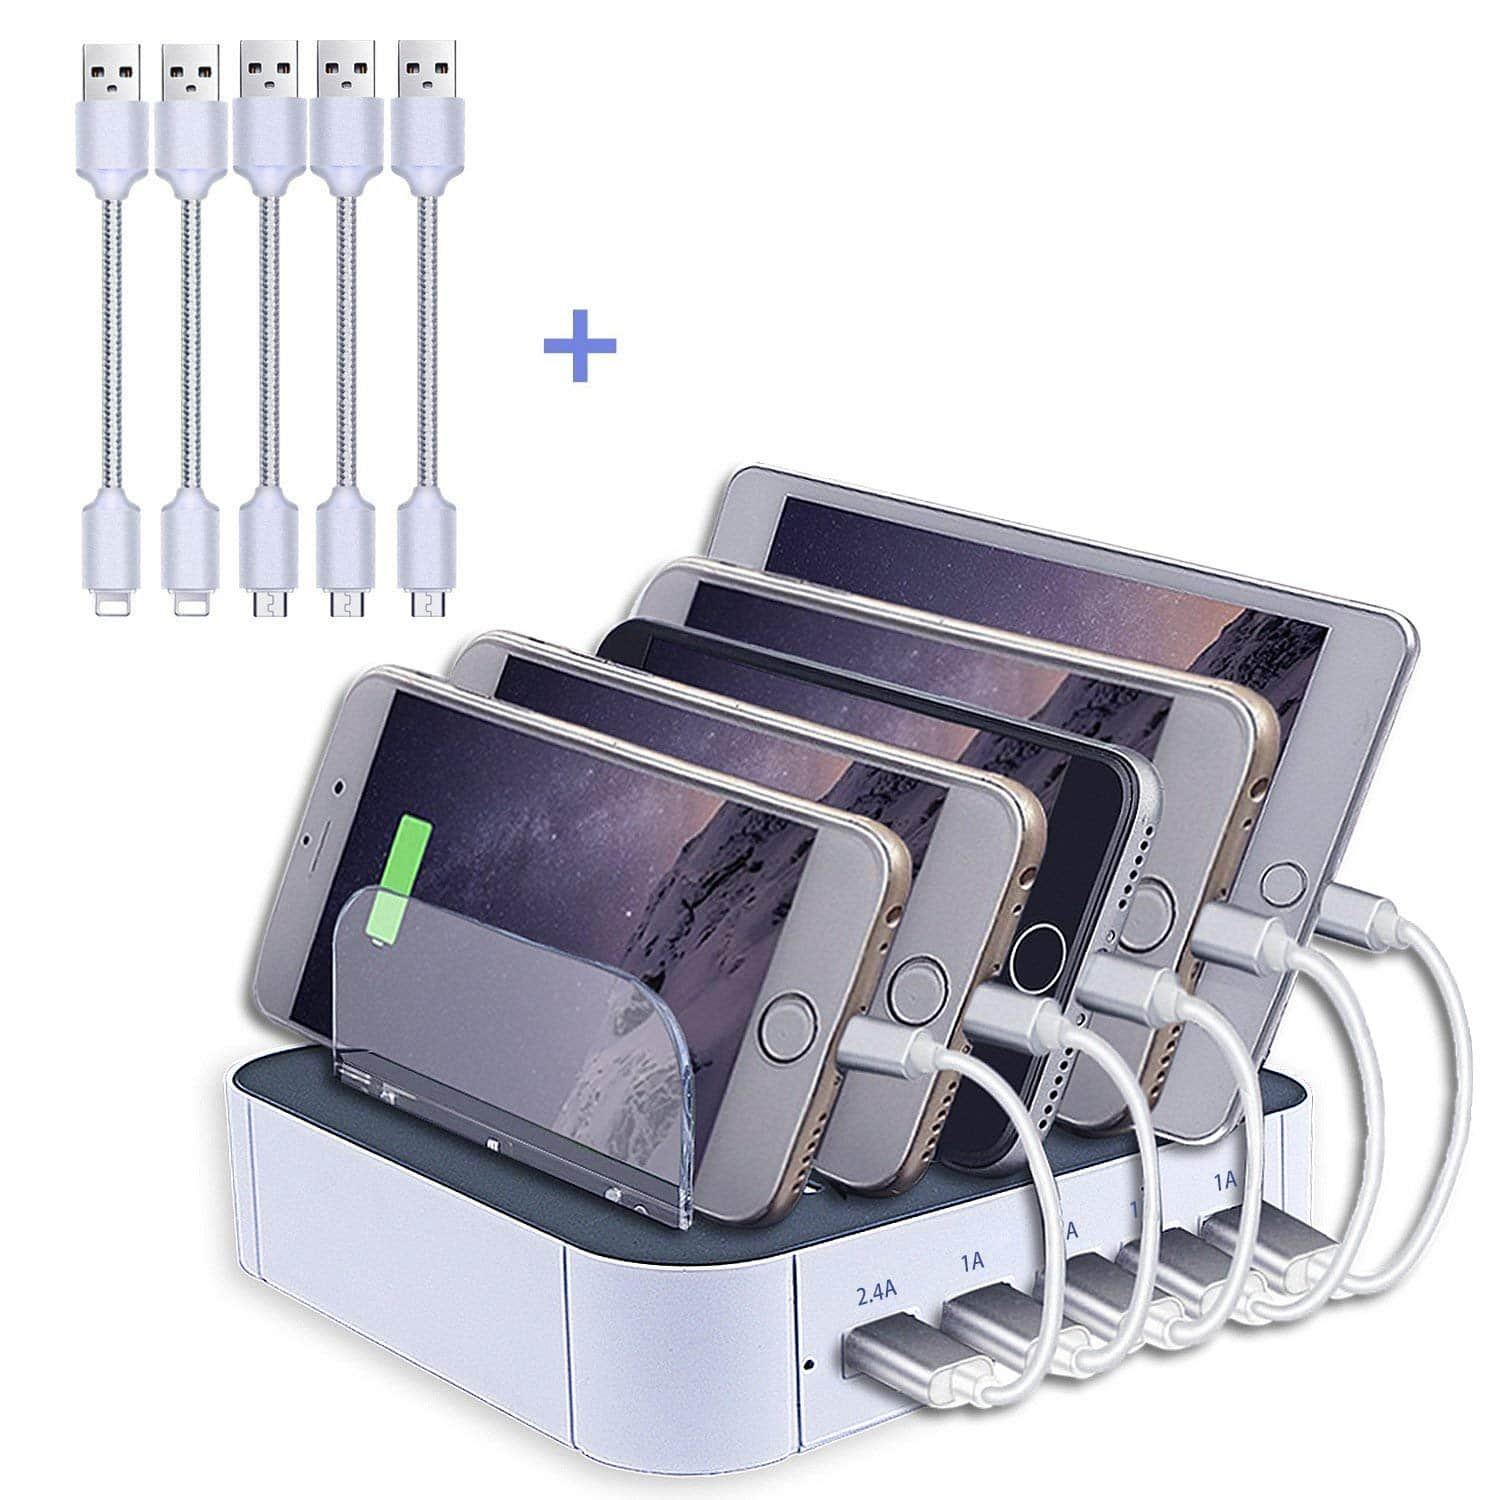 Charging Station, Topoint Multi Device USB Charging Docking Station with 3 Lightning Charging Cords and 2 Micro USB Charging Cords for iPhones/Smart Phones/Tablets -- $9.99 AC